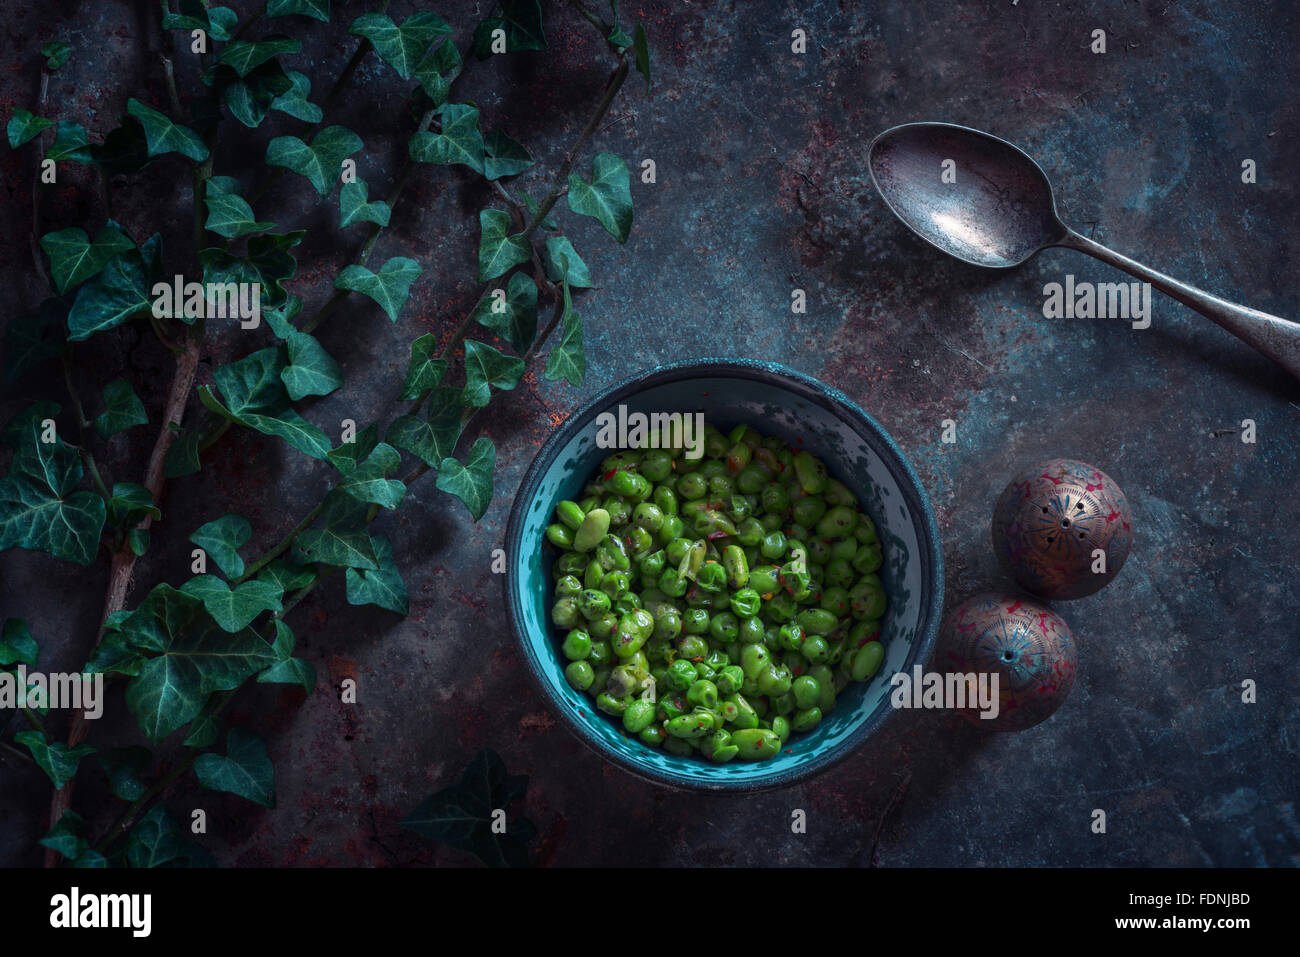 A bowl of Edamame beans and peas. - Stock Image